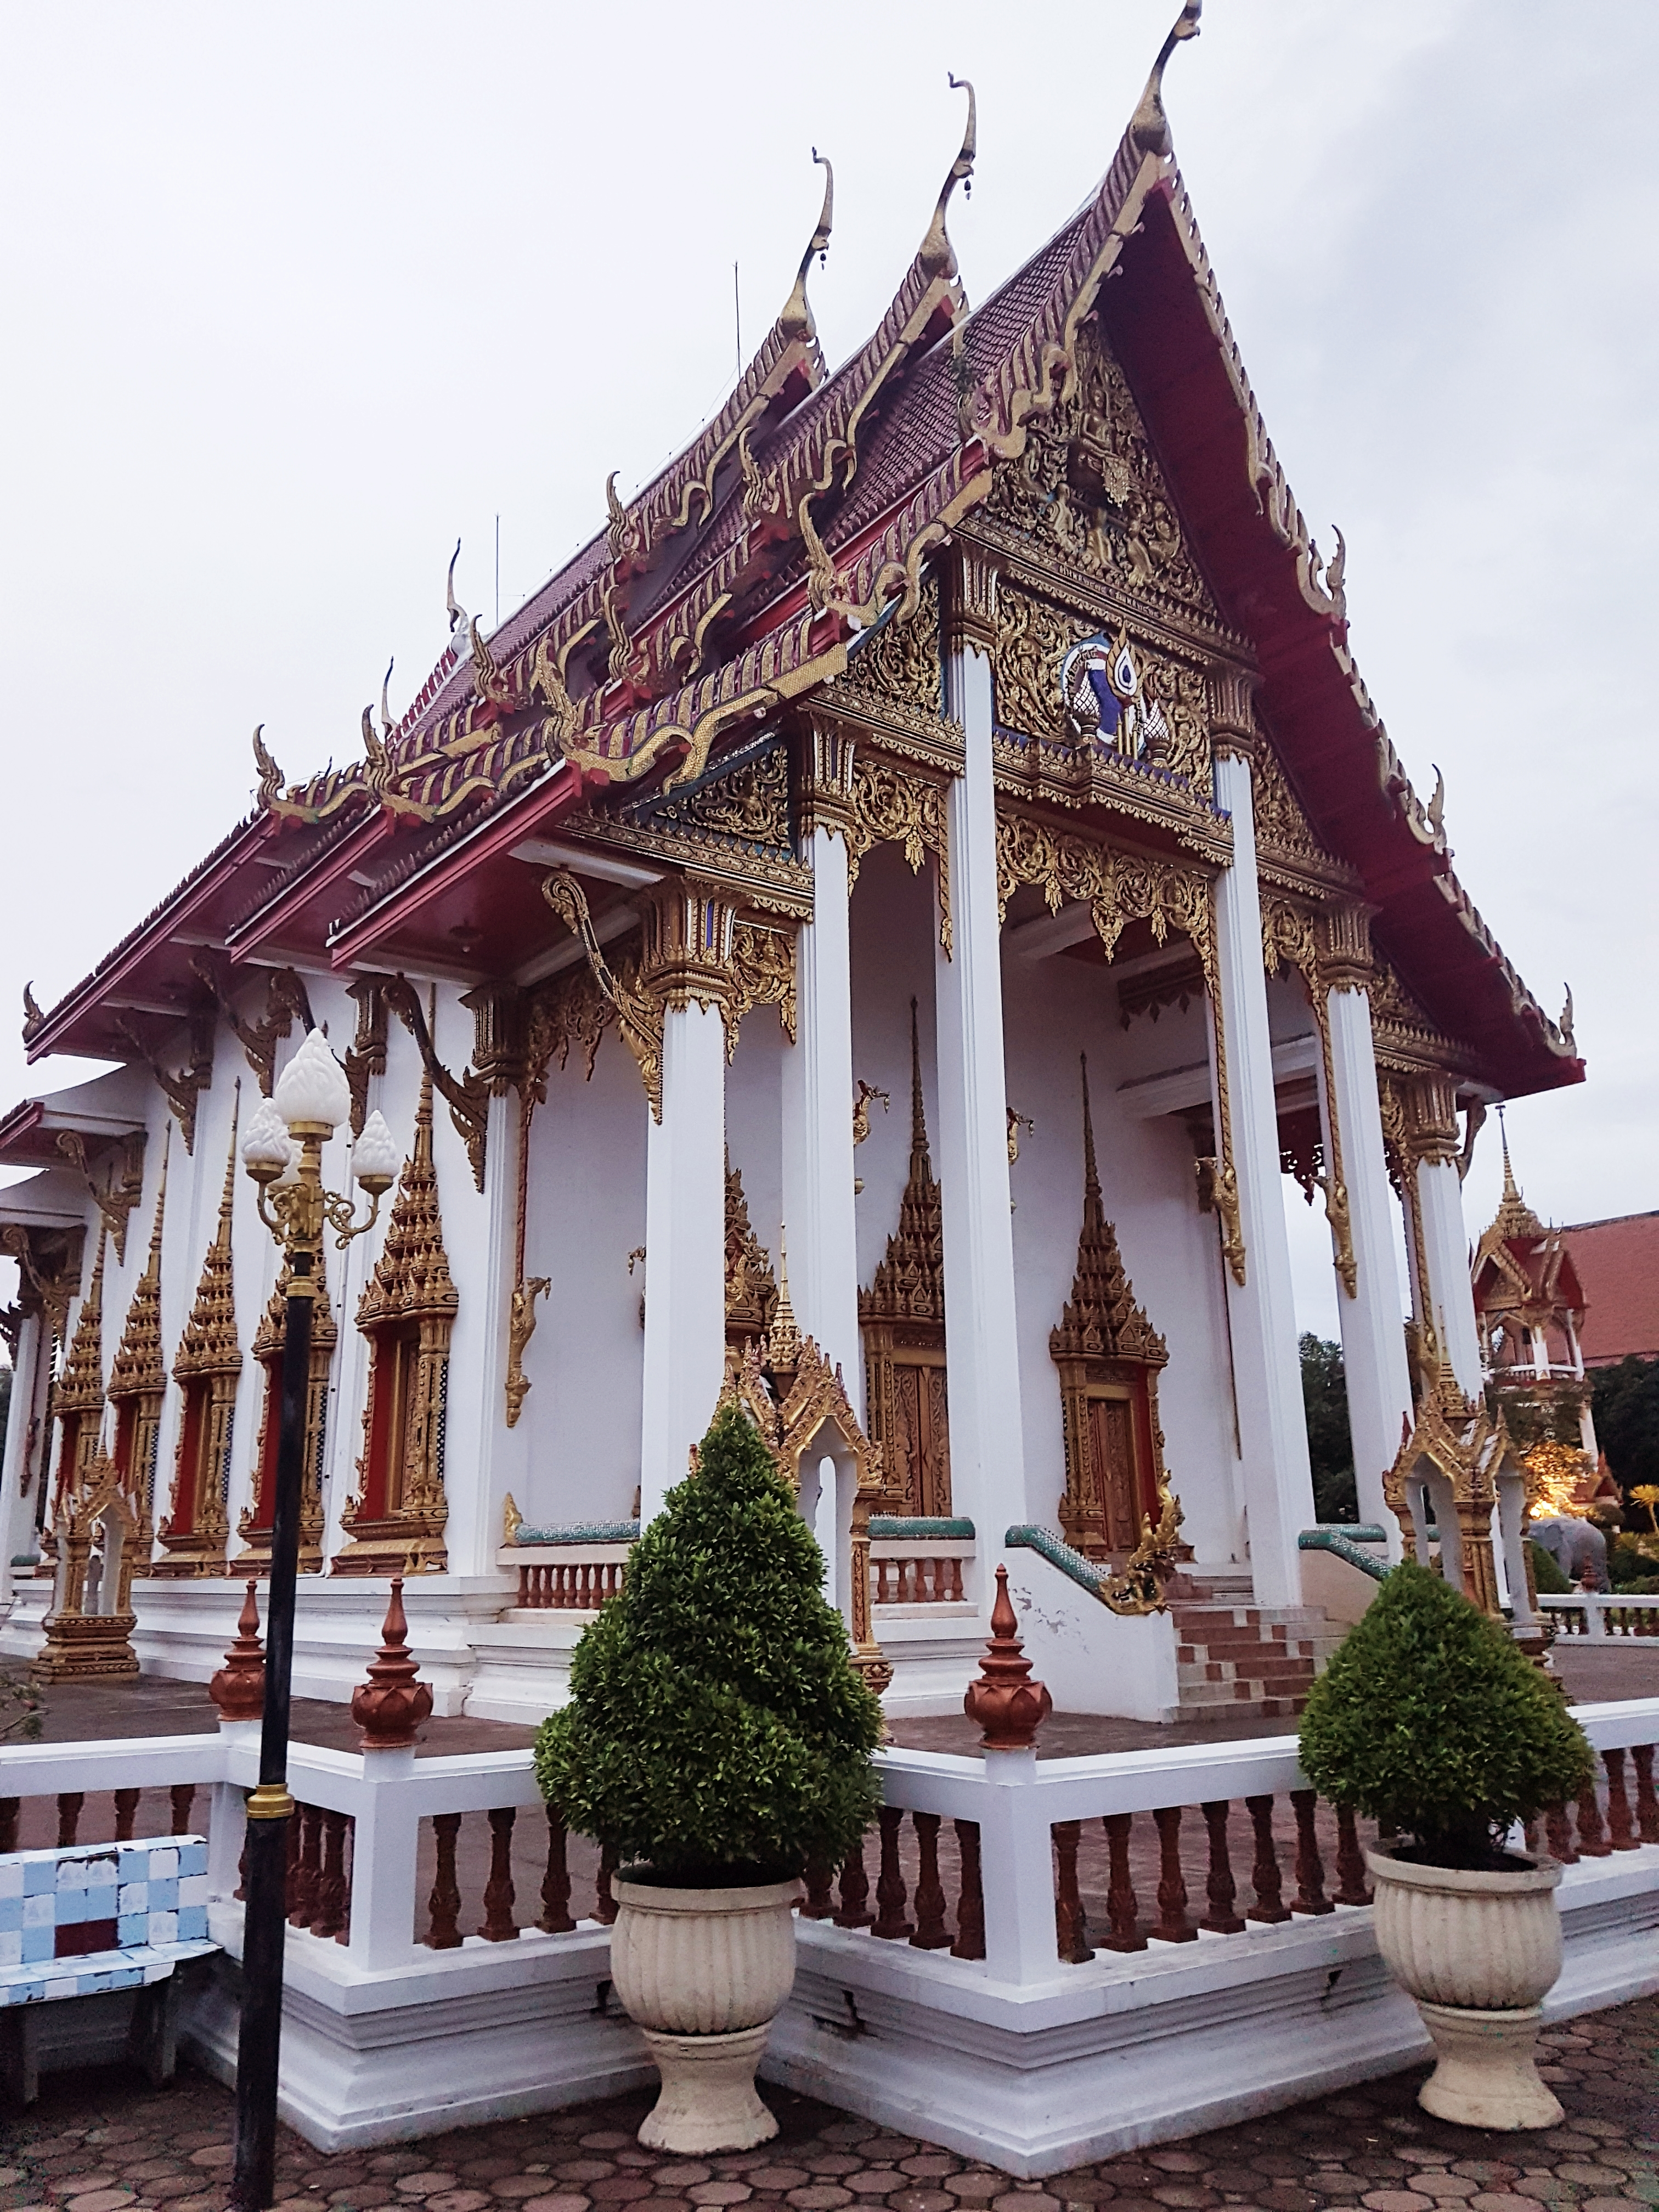 Photo Of Pagoda Temple During Daytime